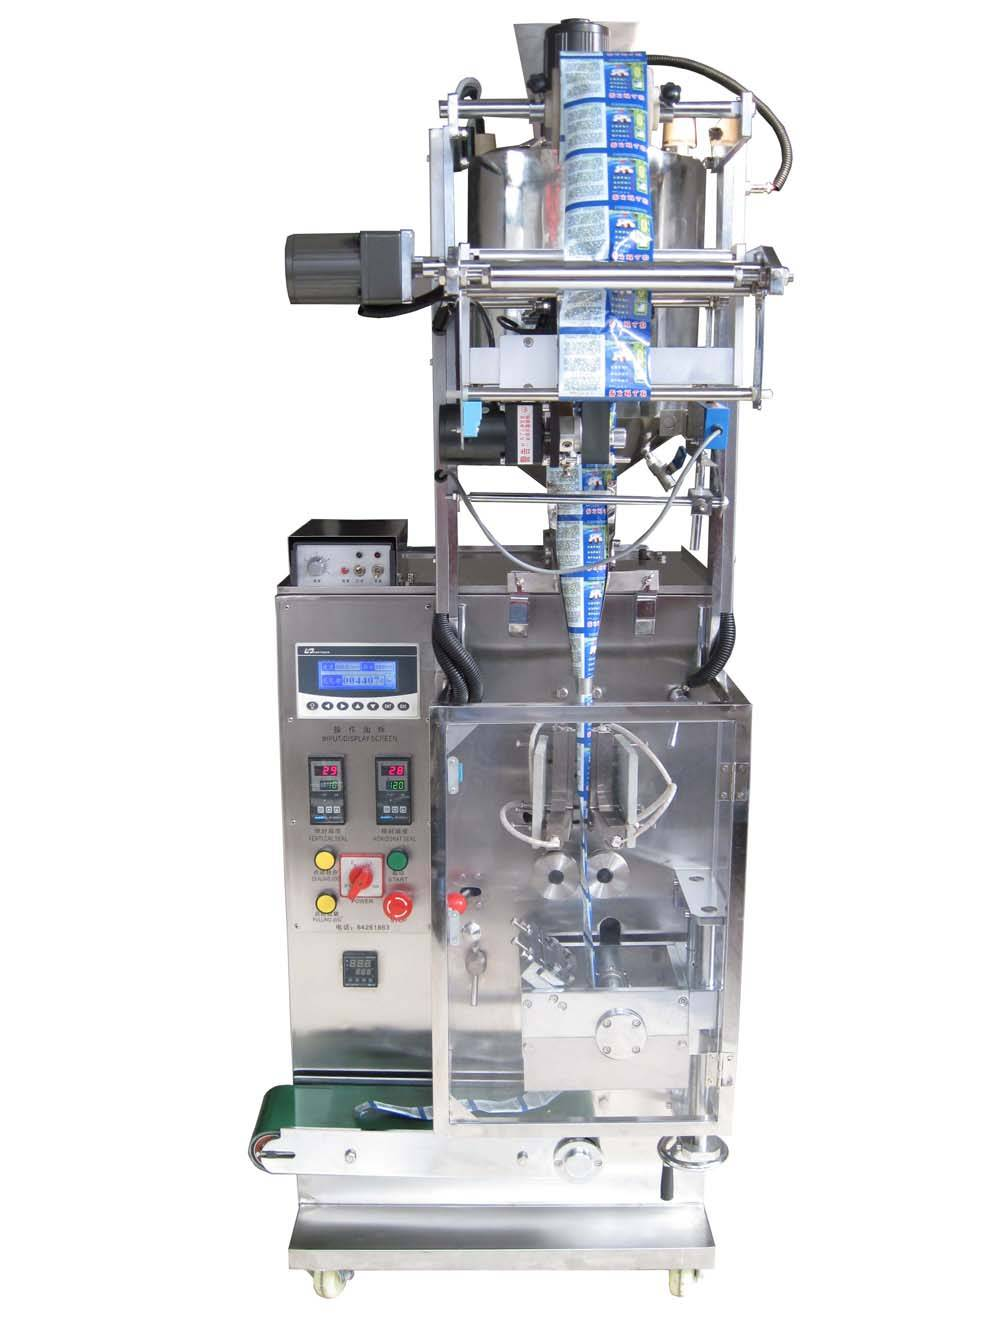 Rotating knife special packaging machine